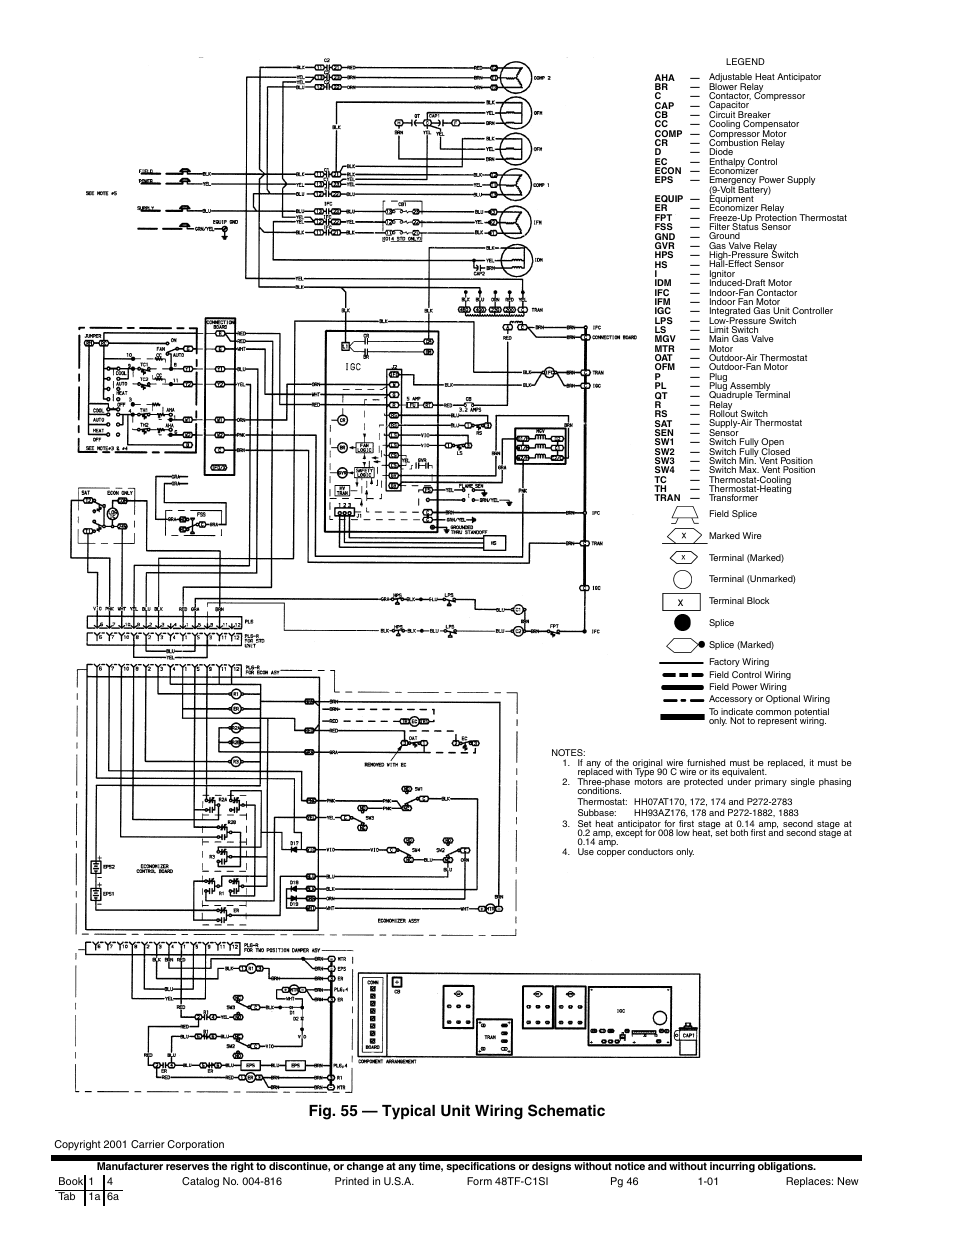 carrier economizer wiring diagram   33 wiring diagram